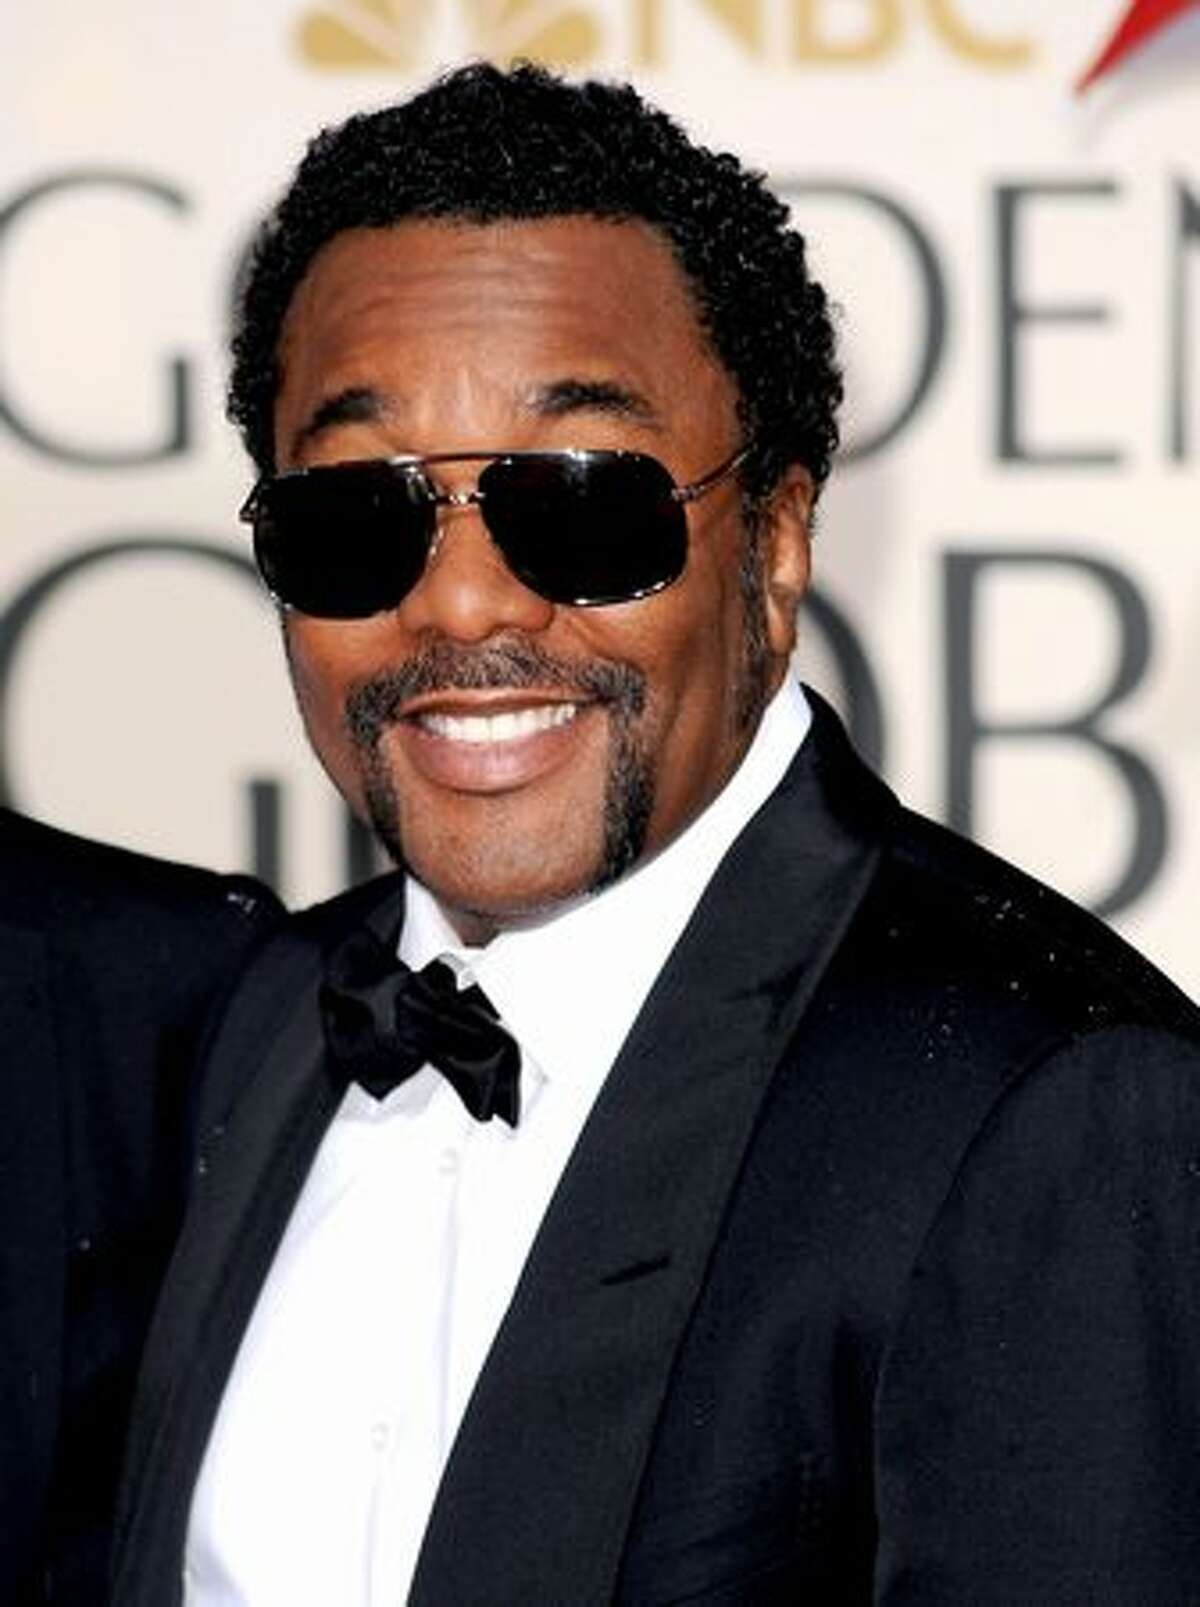 Actor Lee Daniels arrives at the 67th Annual Golden Globe Awards held at The Beverly Hilton Hotel in Beverly Hills, California.